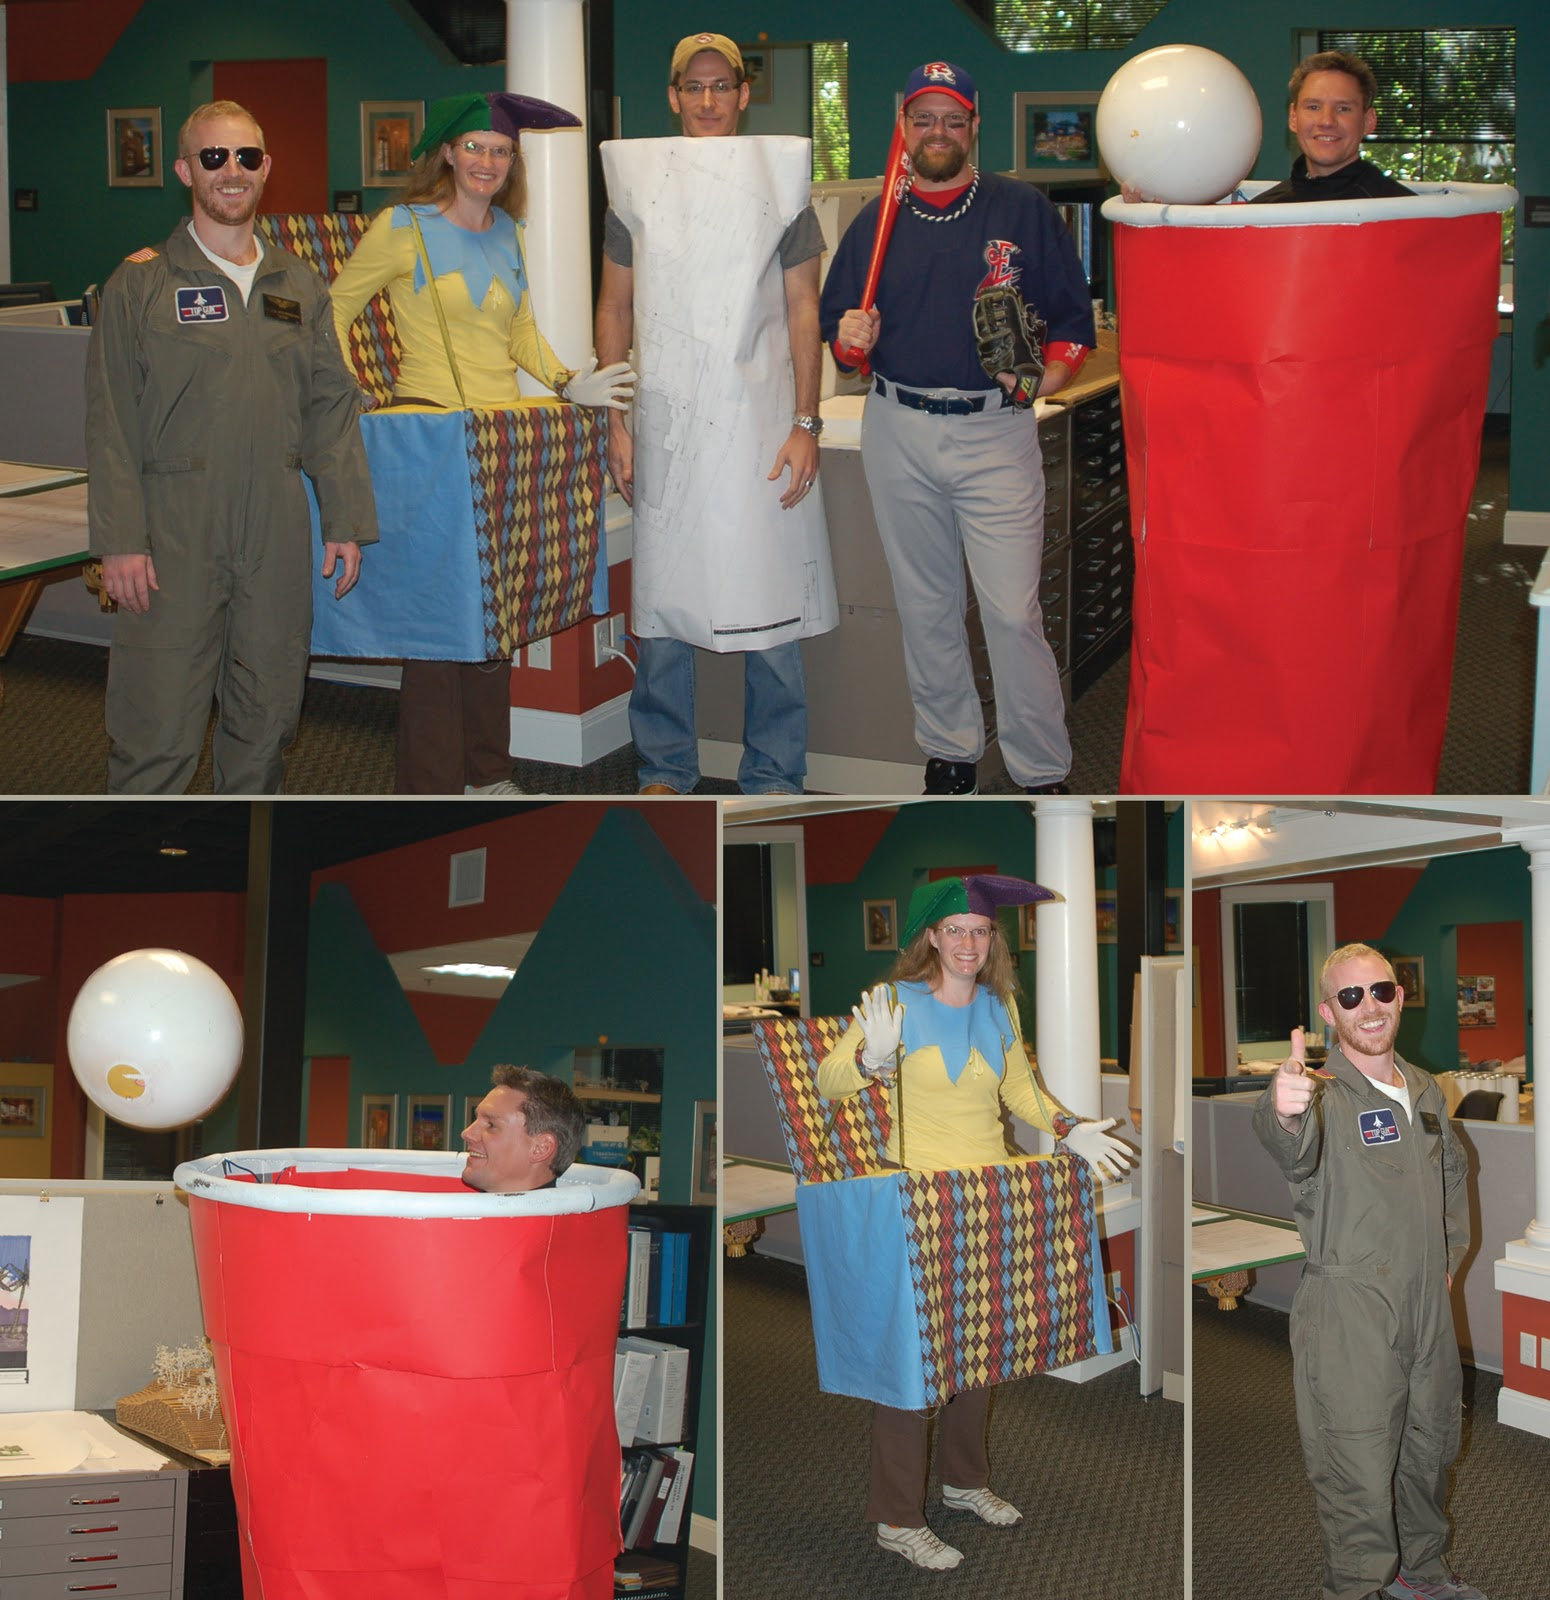 austin architects | cornerstone: halloween costume contest results